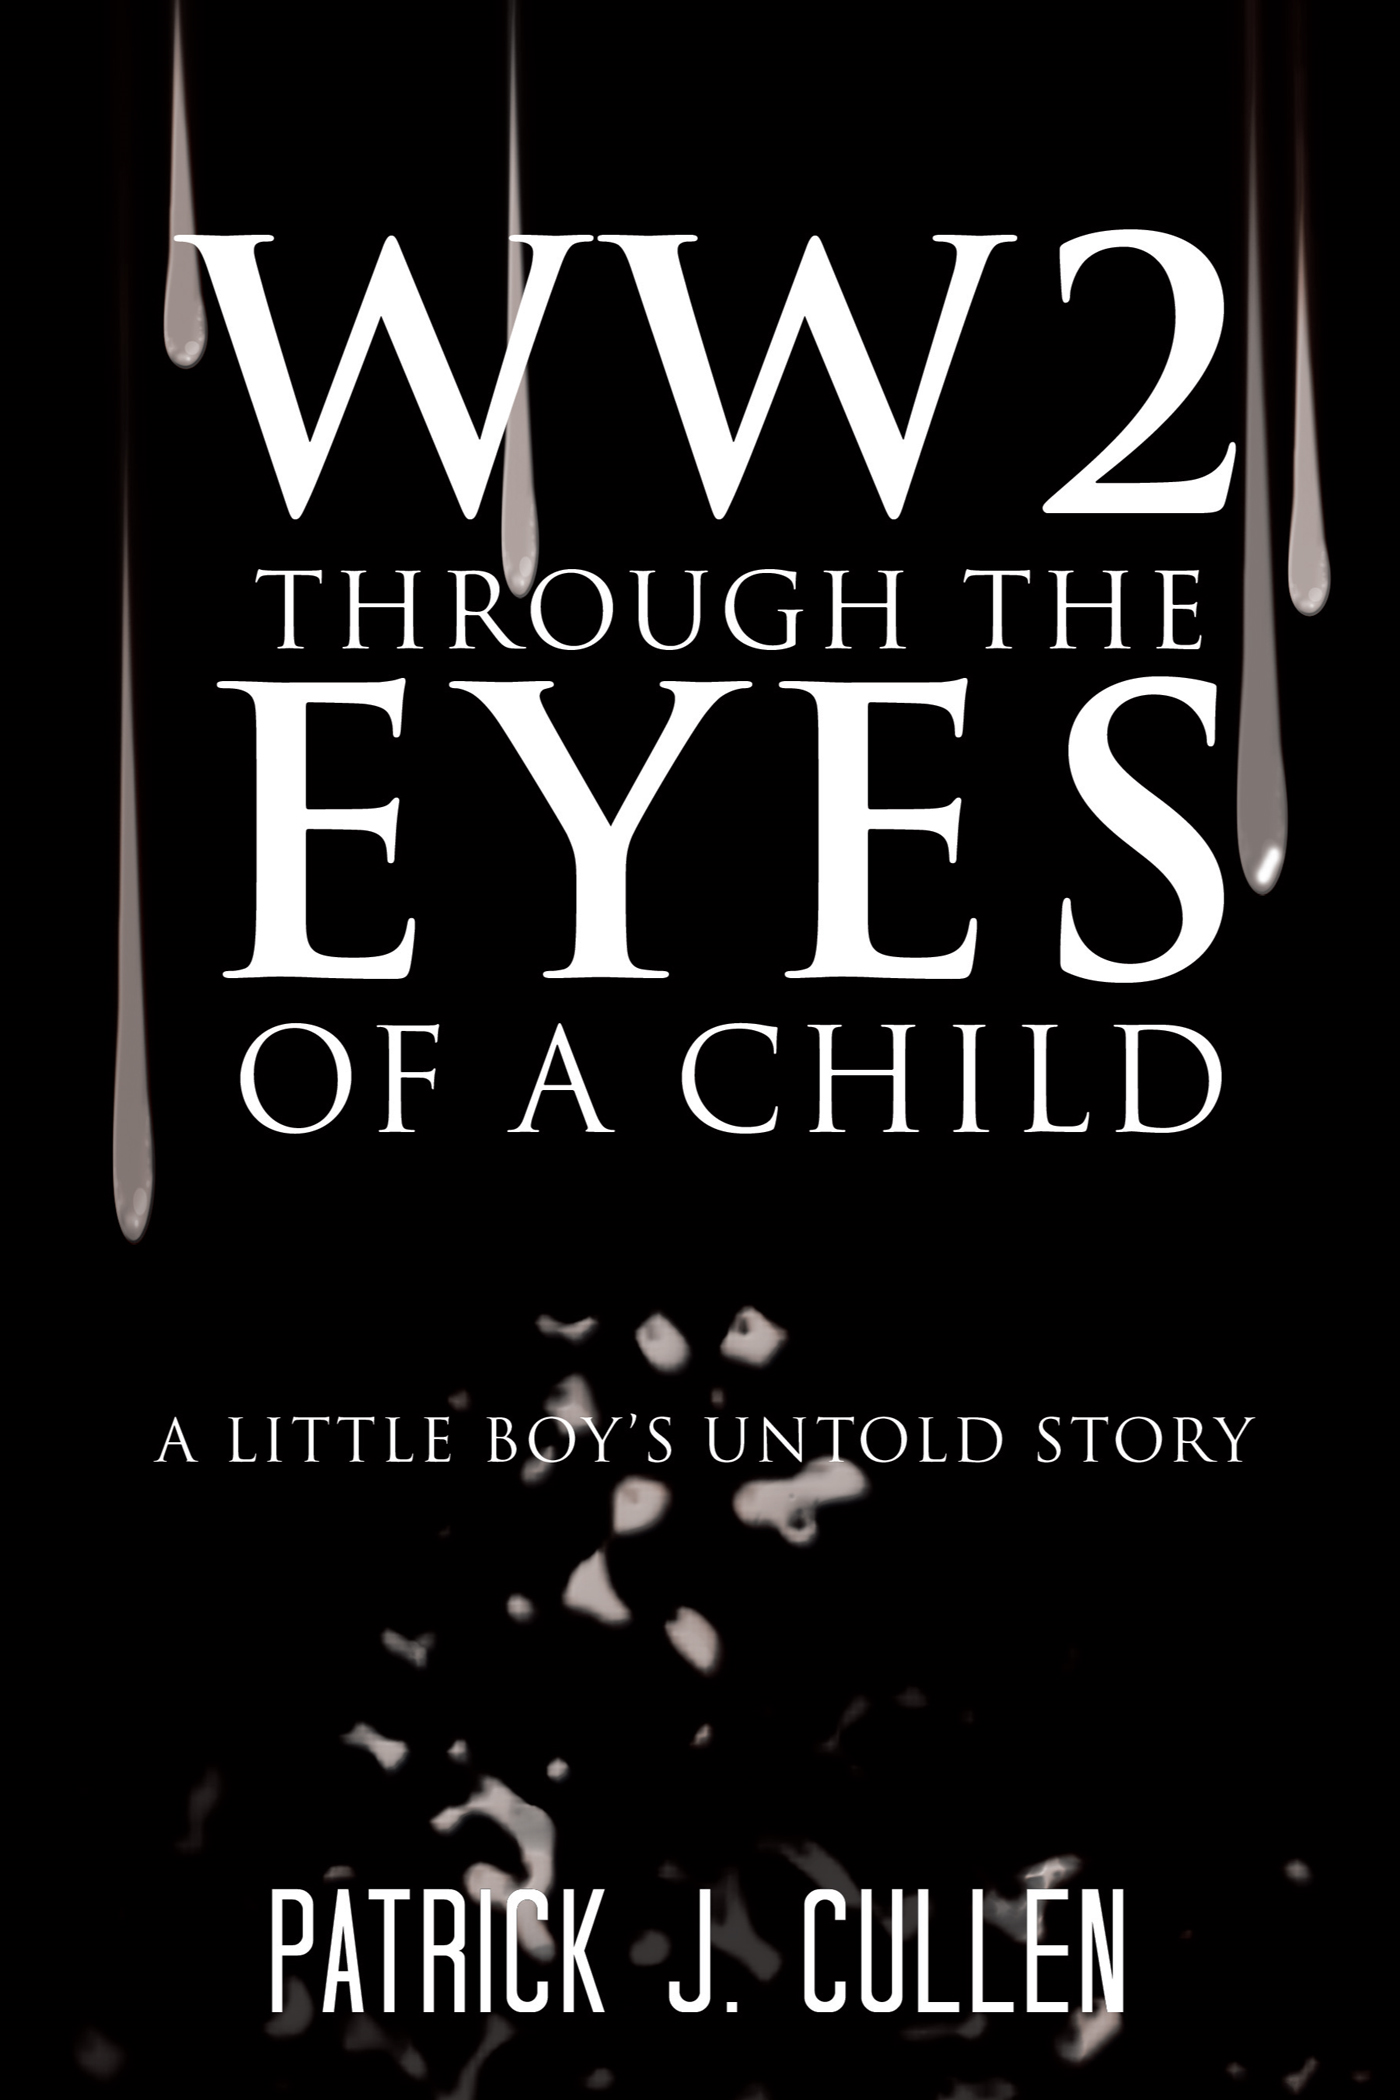 WW2 Through the Eyes Of a Child